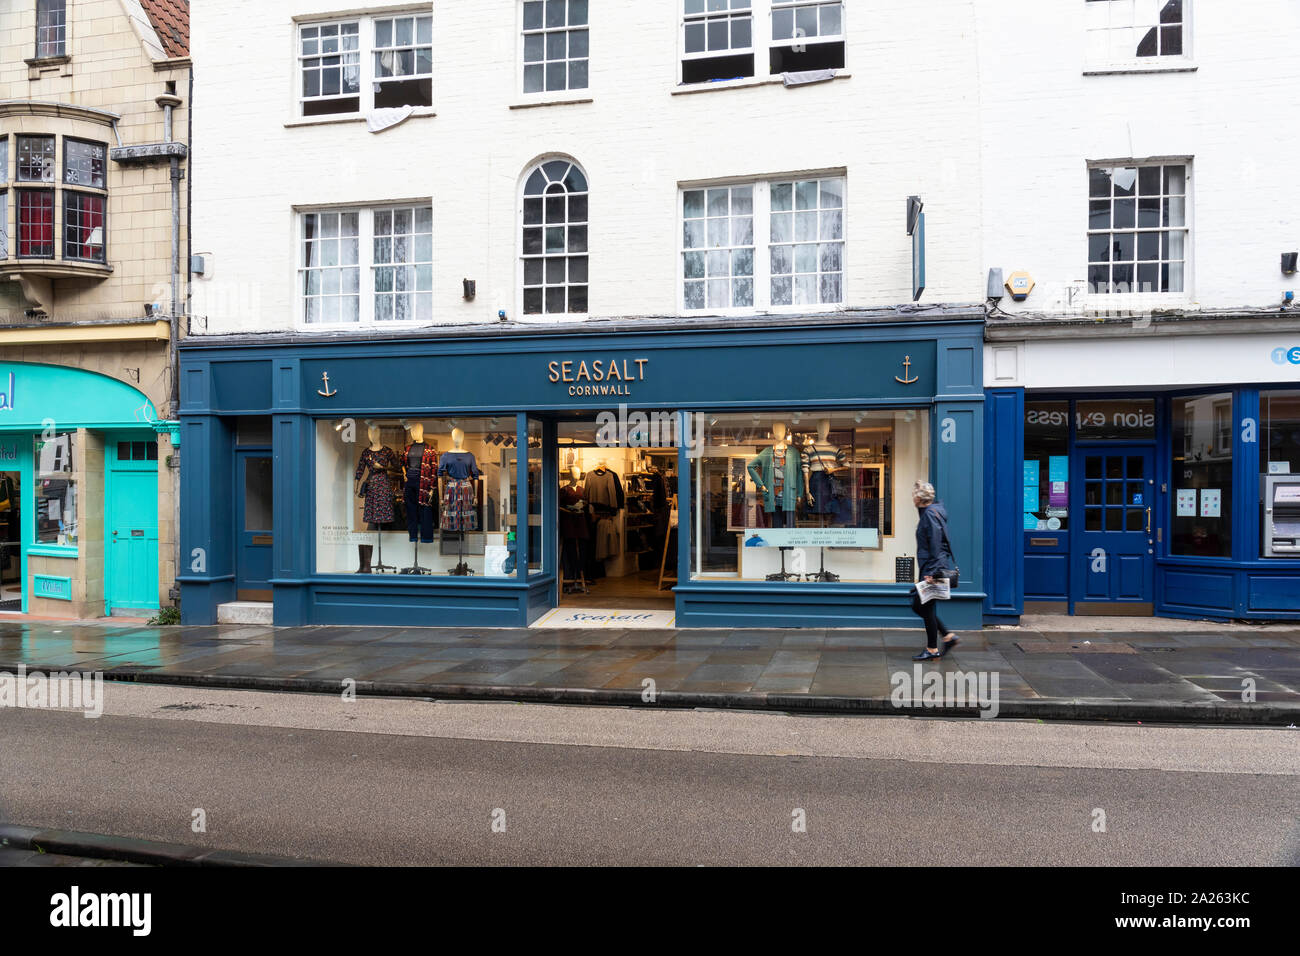 Seasalt clothing store in Wells High Street, Somerset, UK Stock Photo